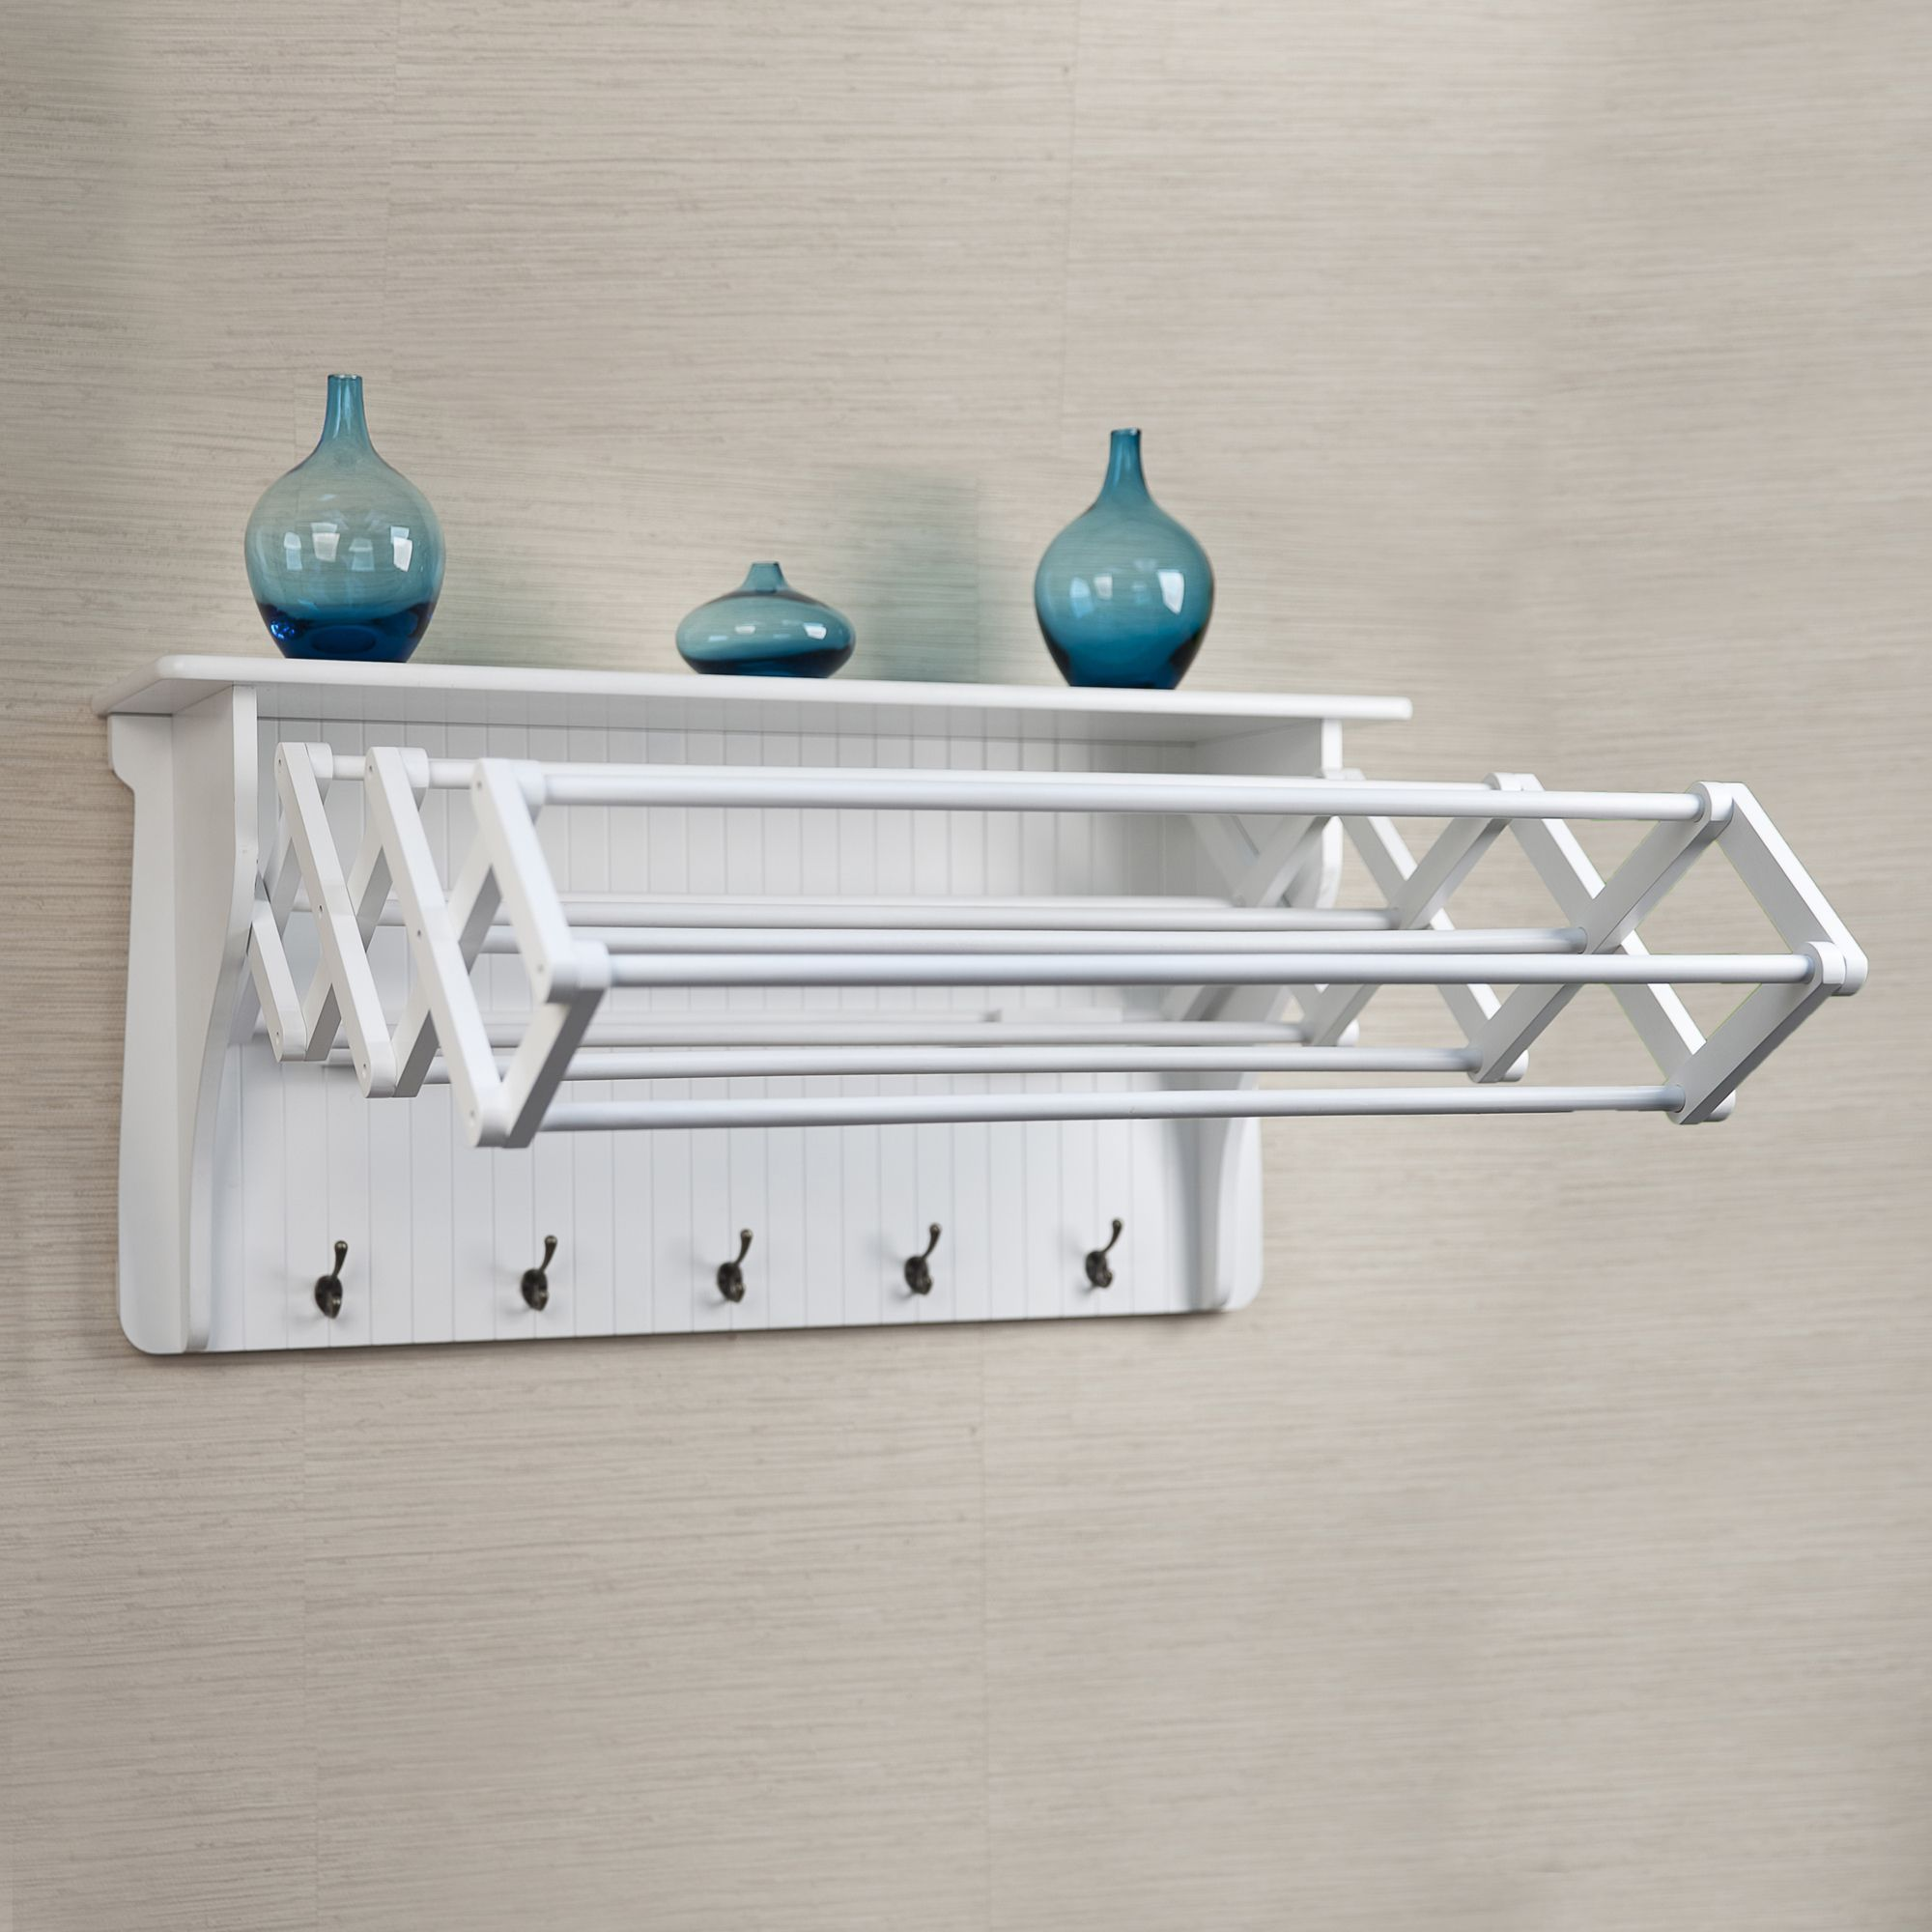 Accordion drying rack white wood laundry rack and hanging racks